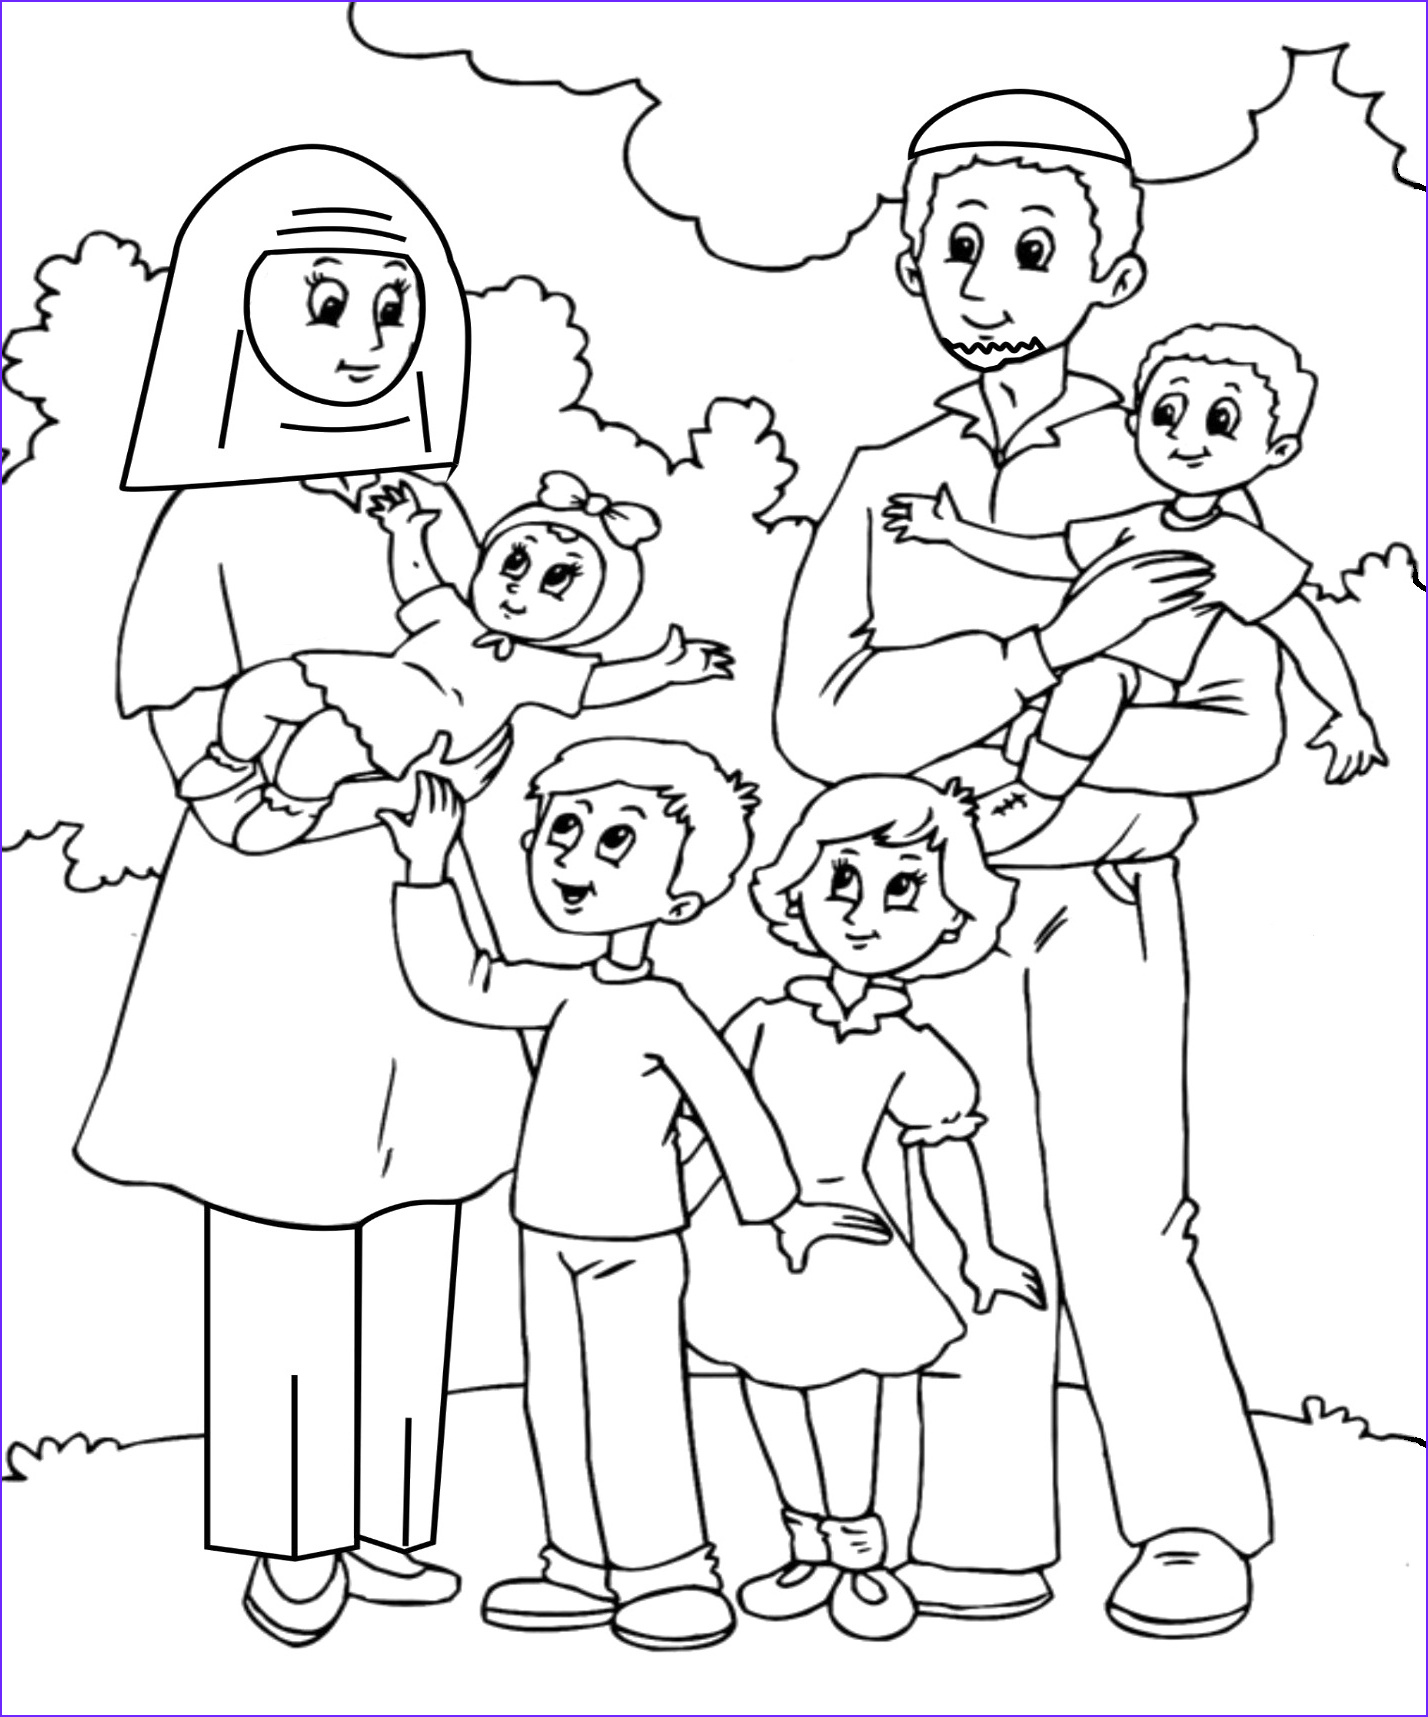 me and my family drawing